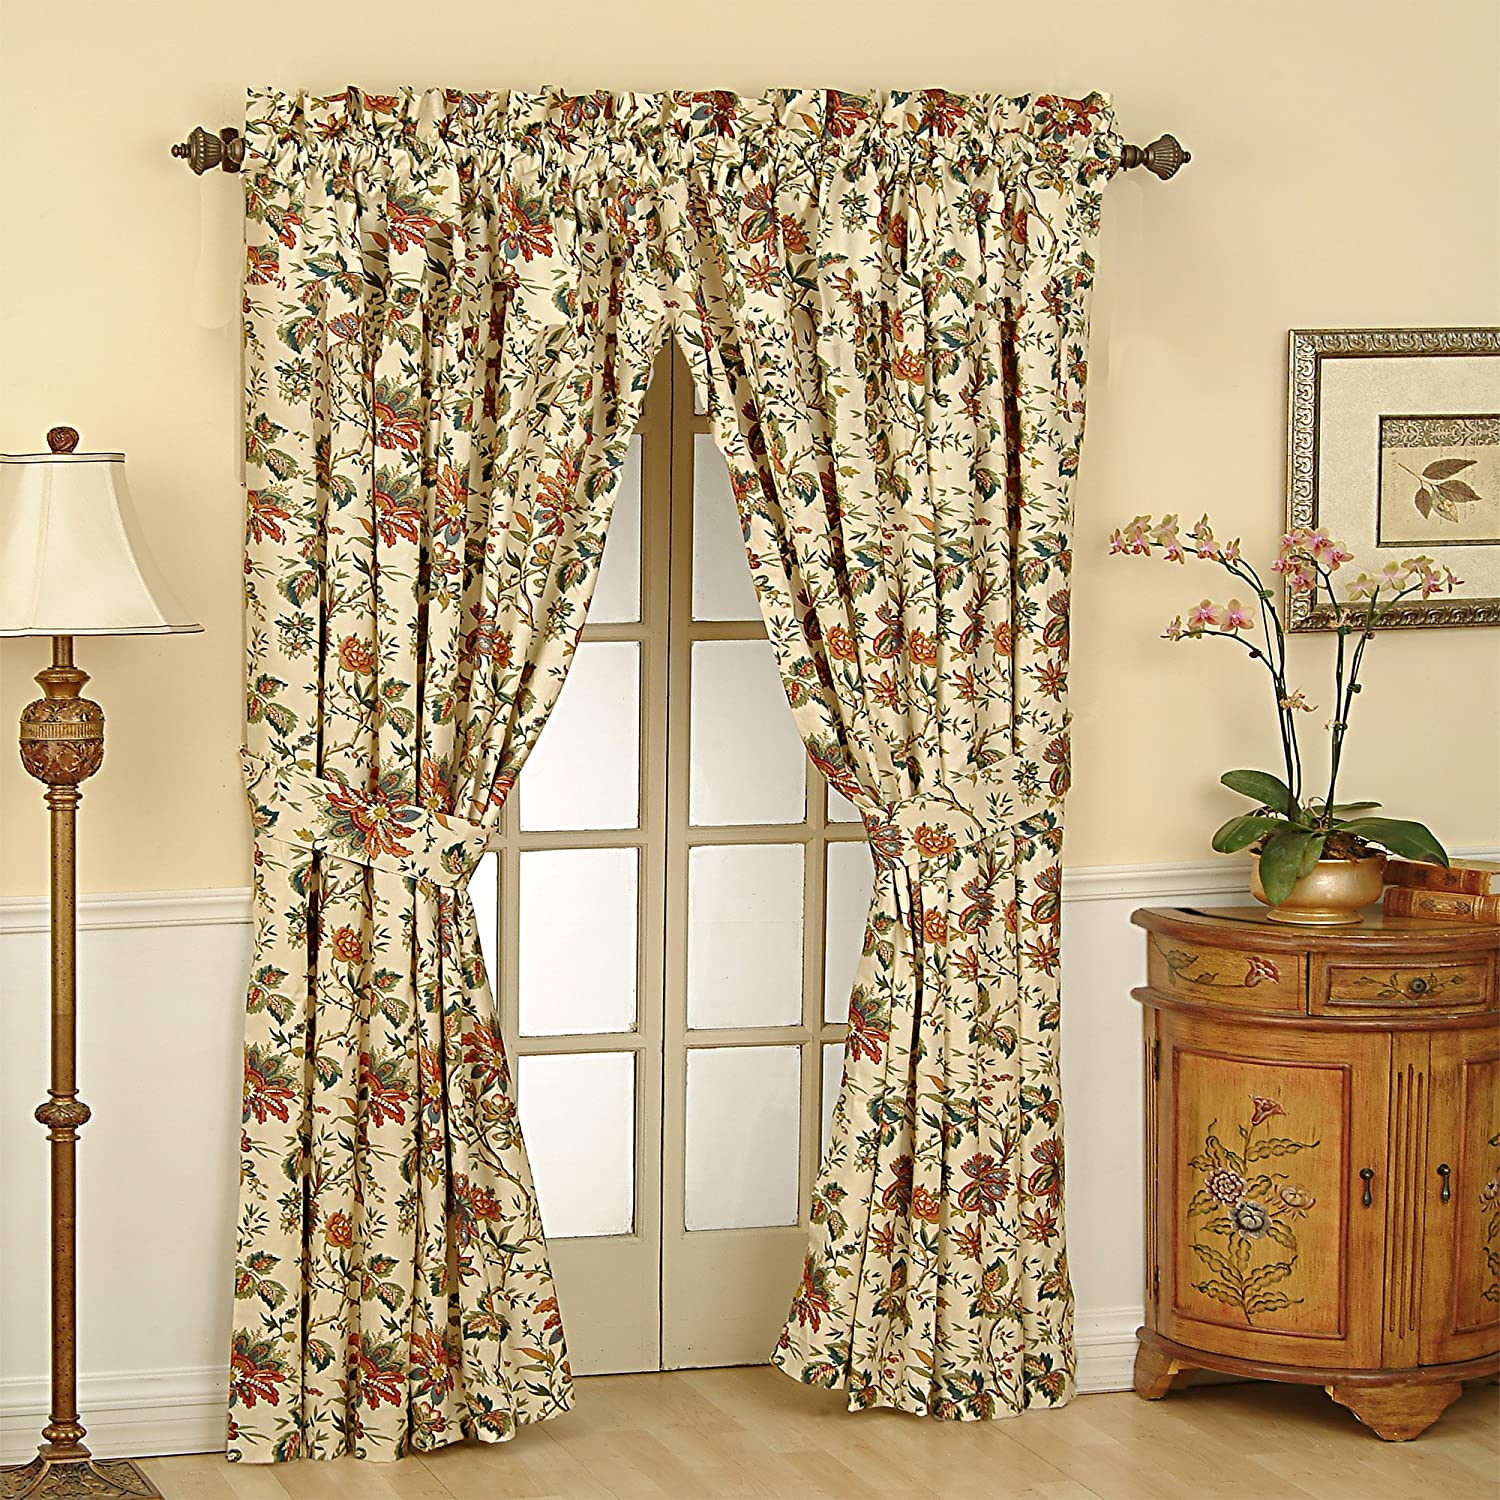 """WAVERLY Curtains for Bedroom - Felicite 50"""" x 84"""" Decorative Single Panel Rod Pocket Window Treatment Privacy Curtains for Living Room, Creme"""